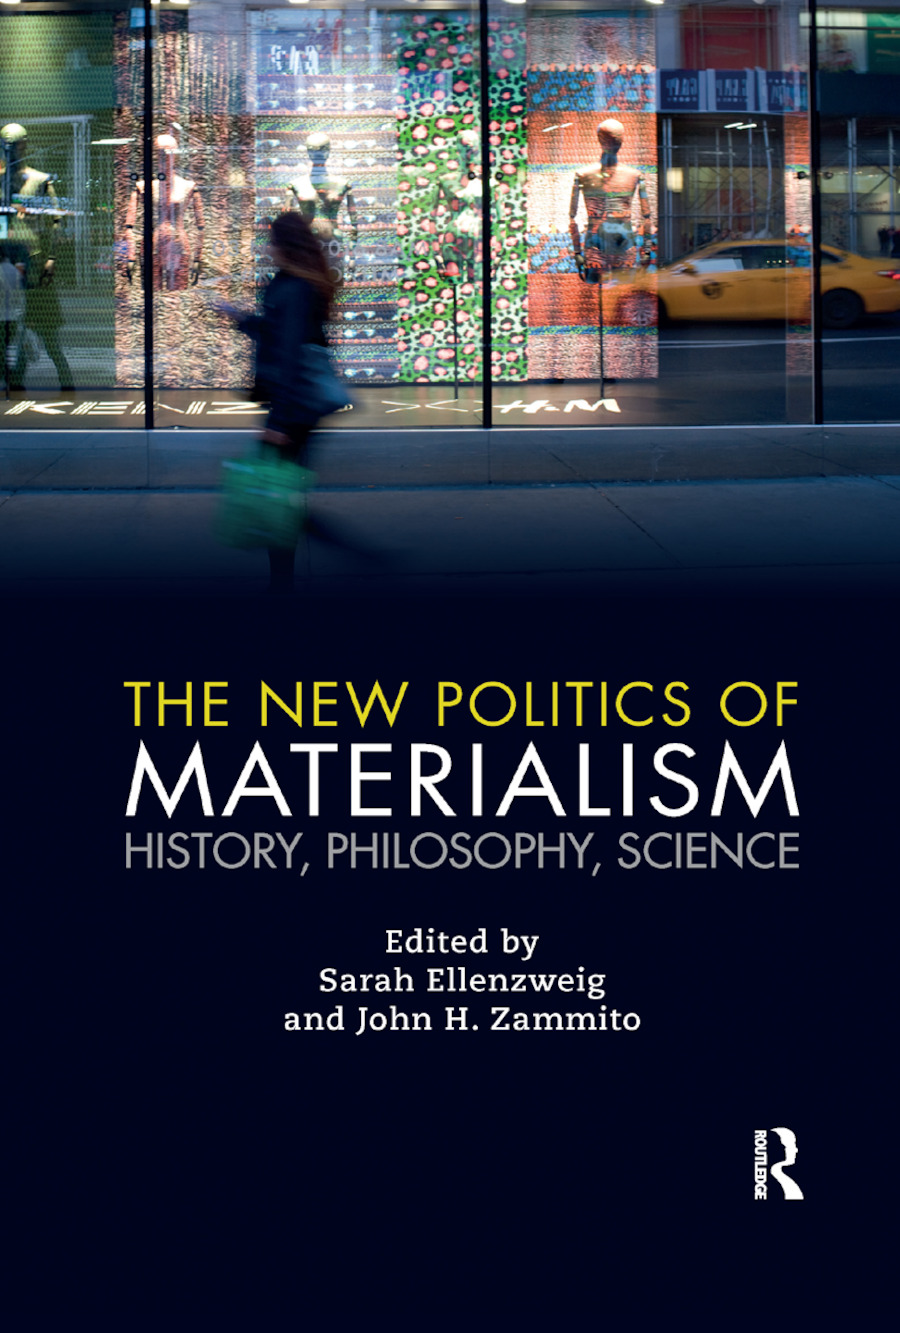 The New Politics of Materialism: History, Philosophy, Science book cover